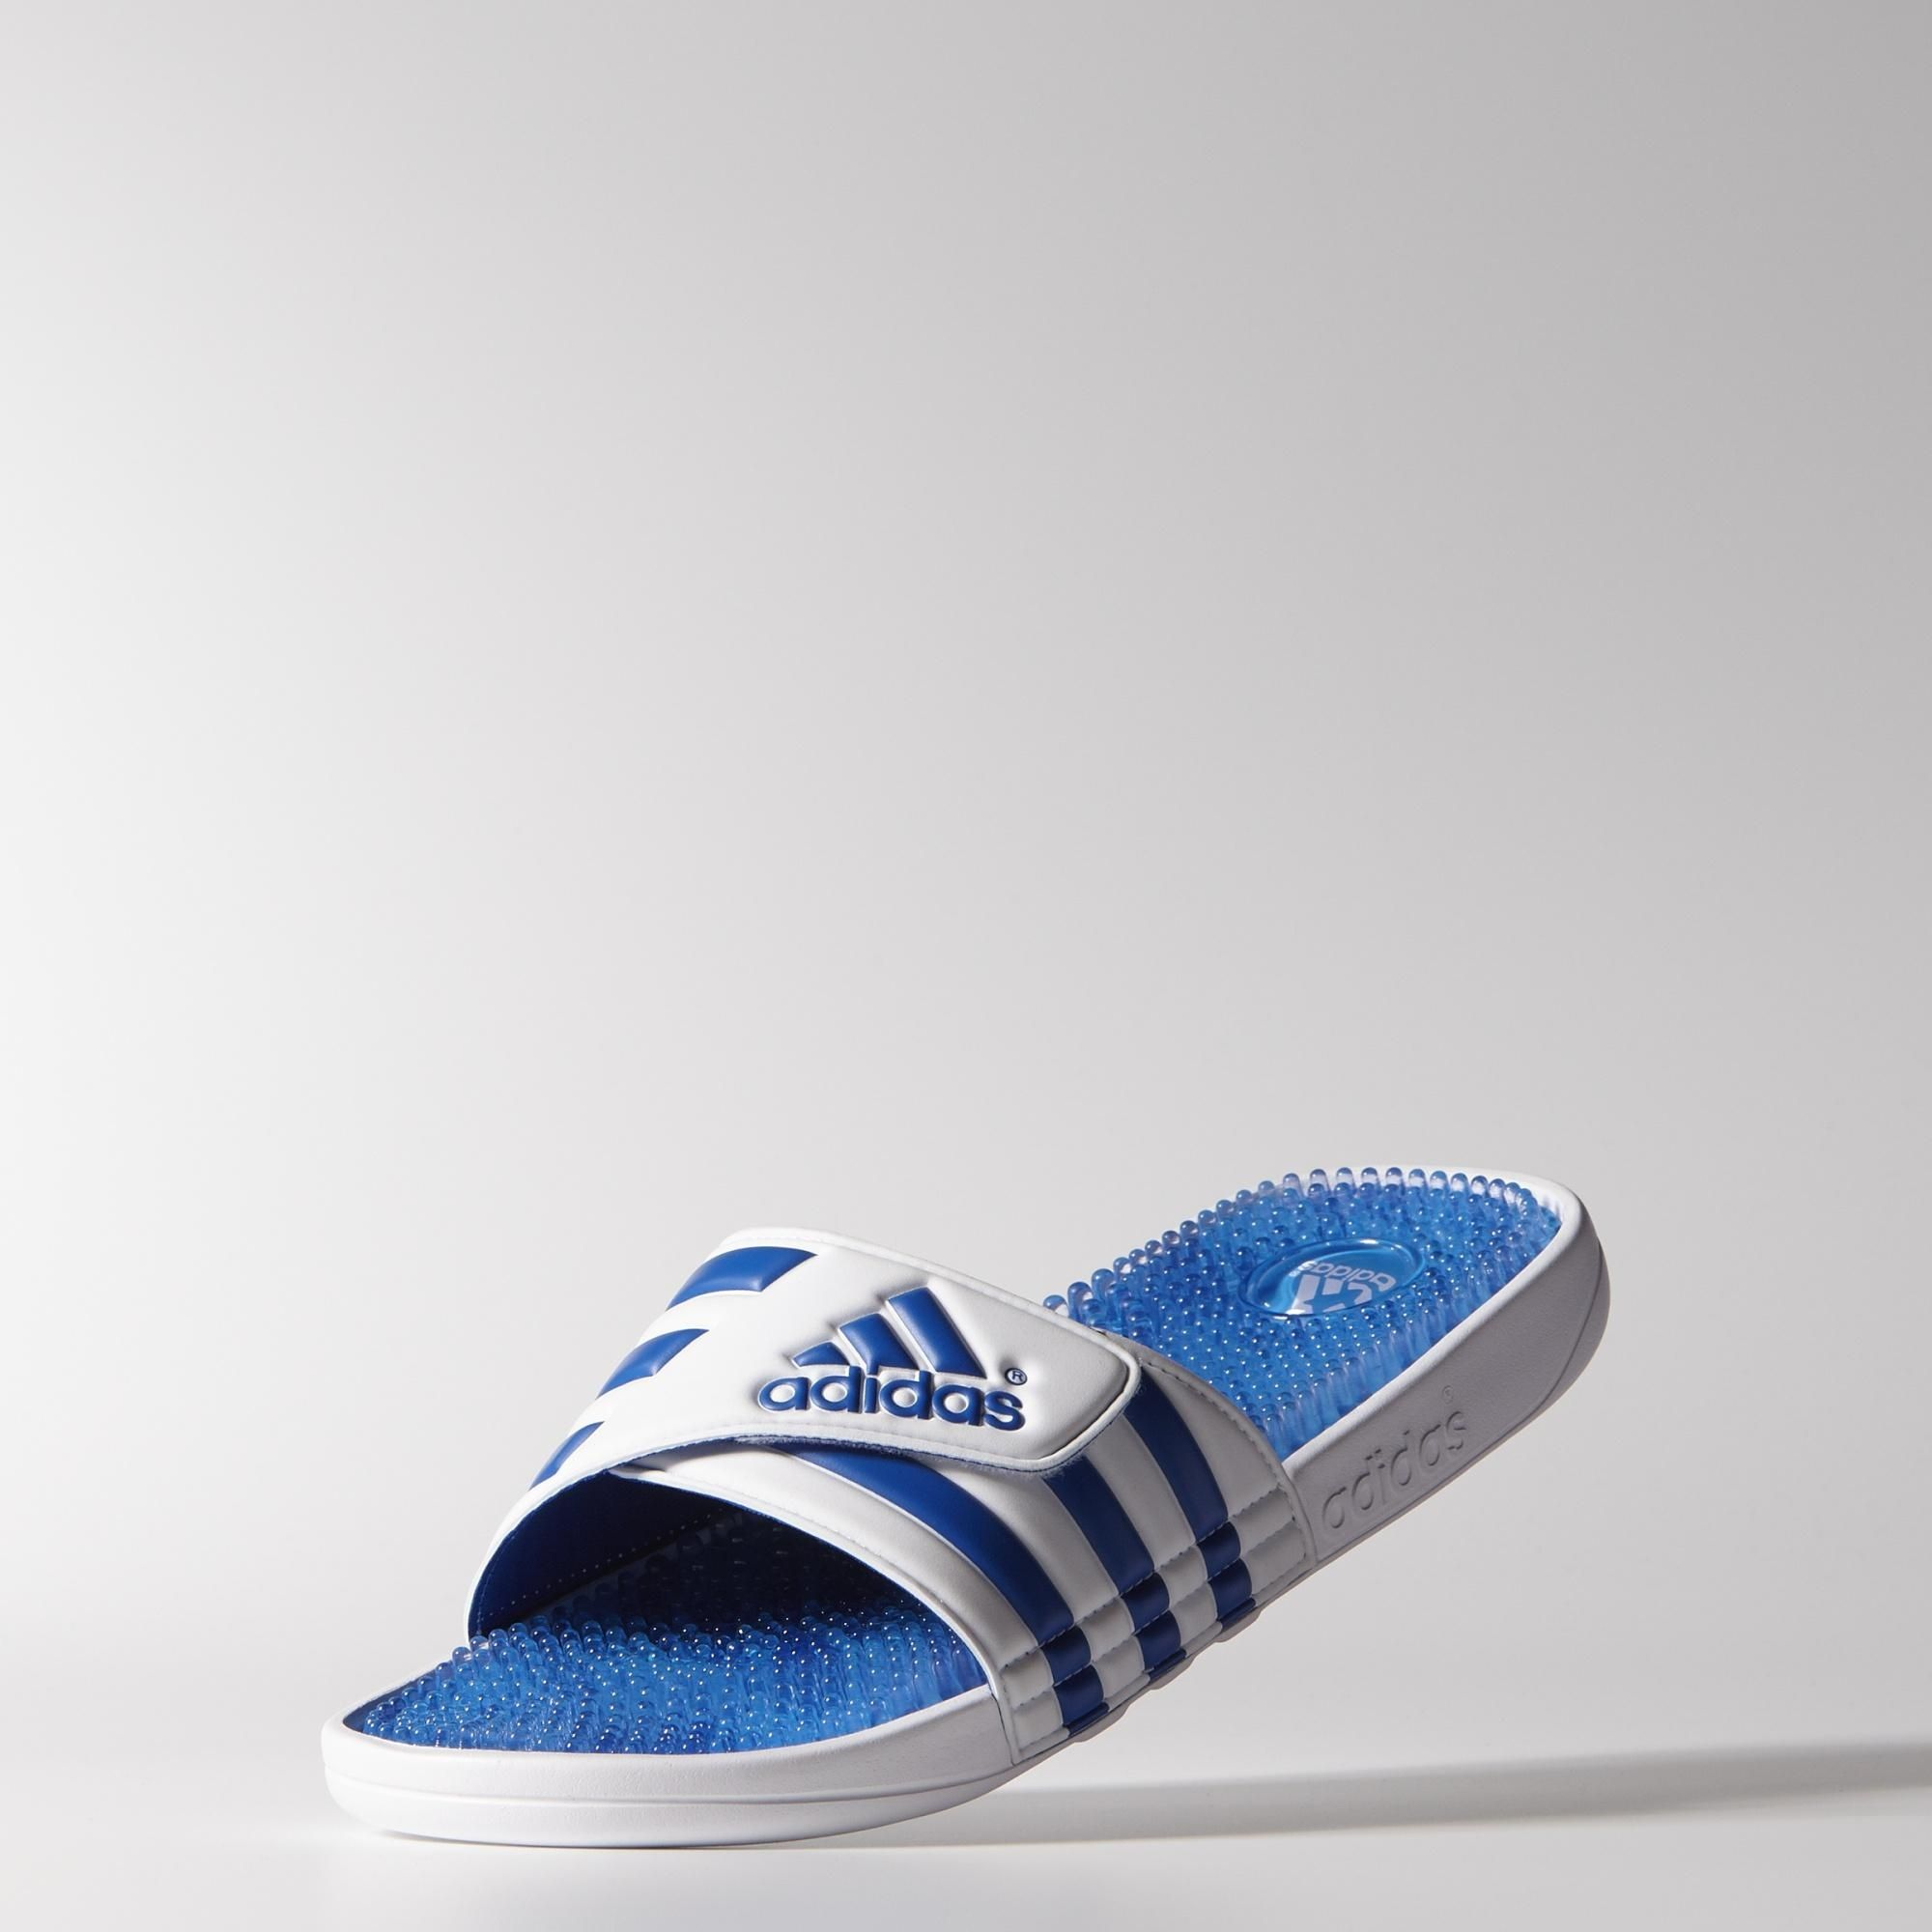 adidas adissage graphic 2 0 slipper herren badelatschen. Black Bedroom Furniture Sets. Home Design Ideas